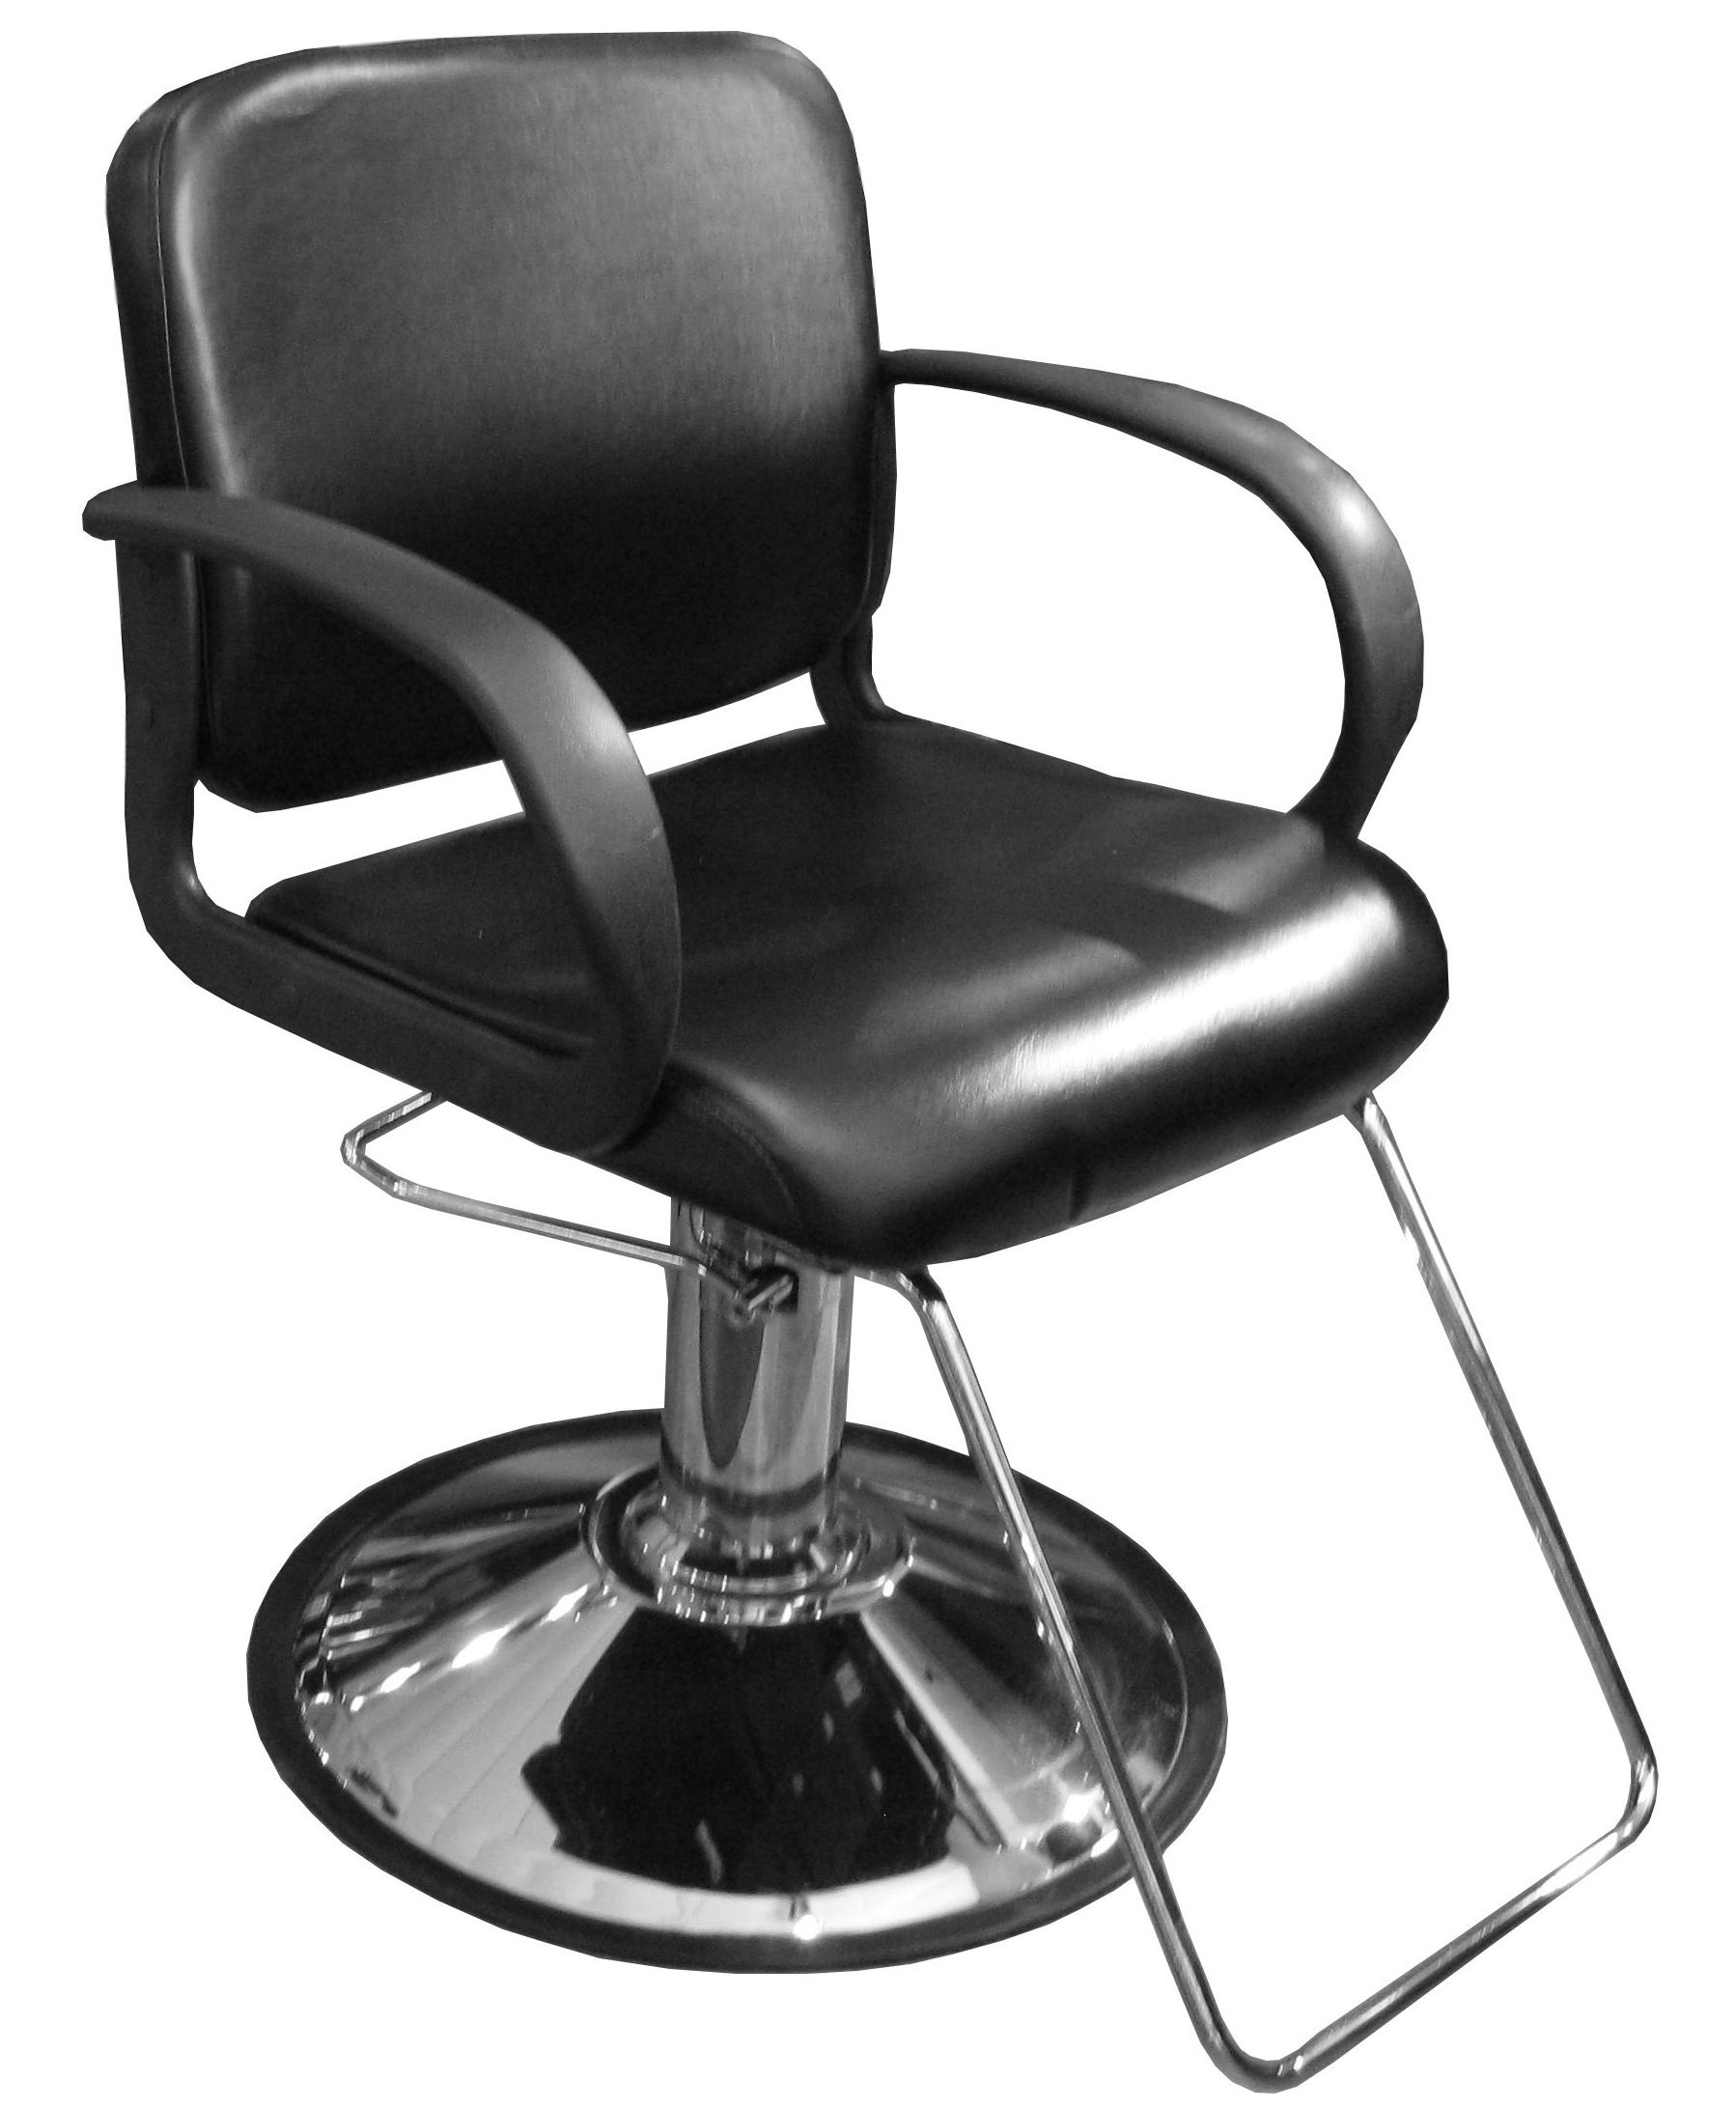 belmont barber chair parts outdoor expressions zero gravity relaxer convertible lounge styling chairs